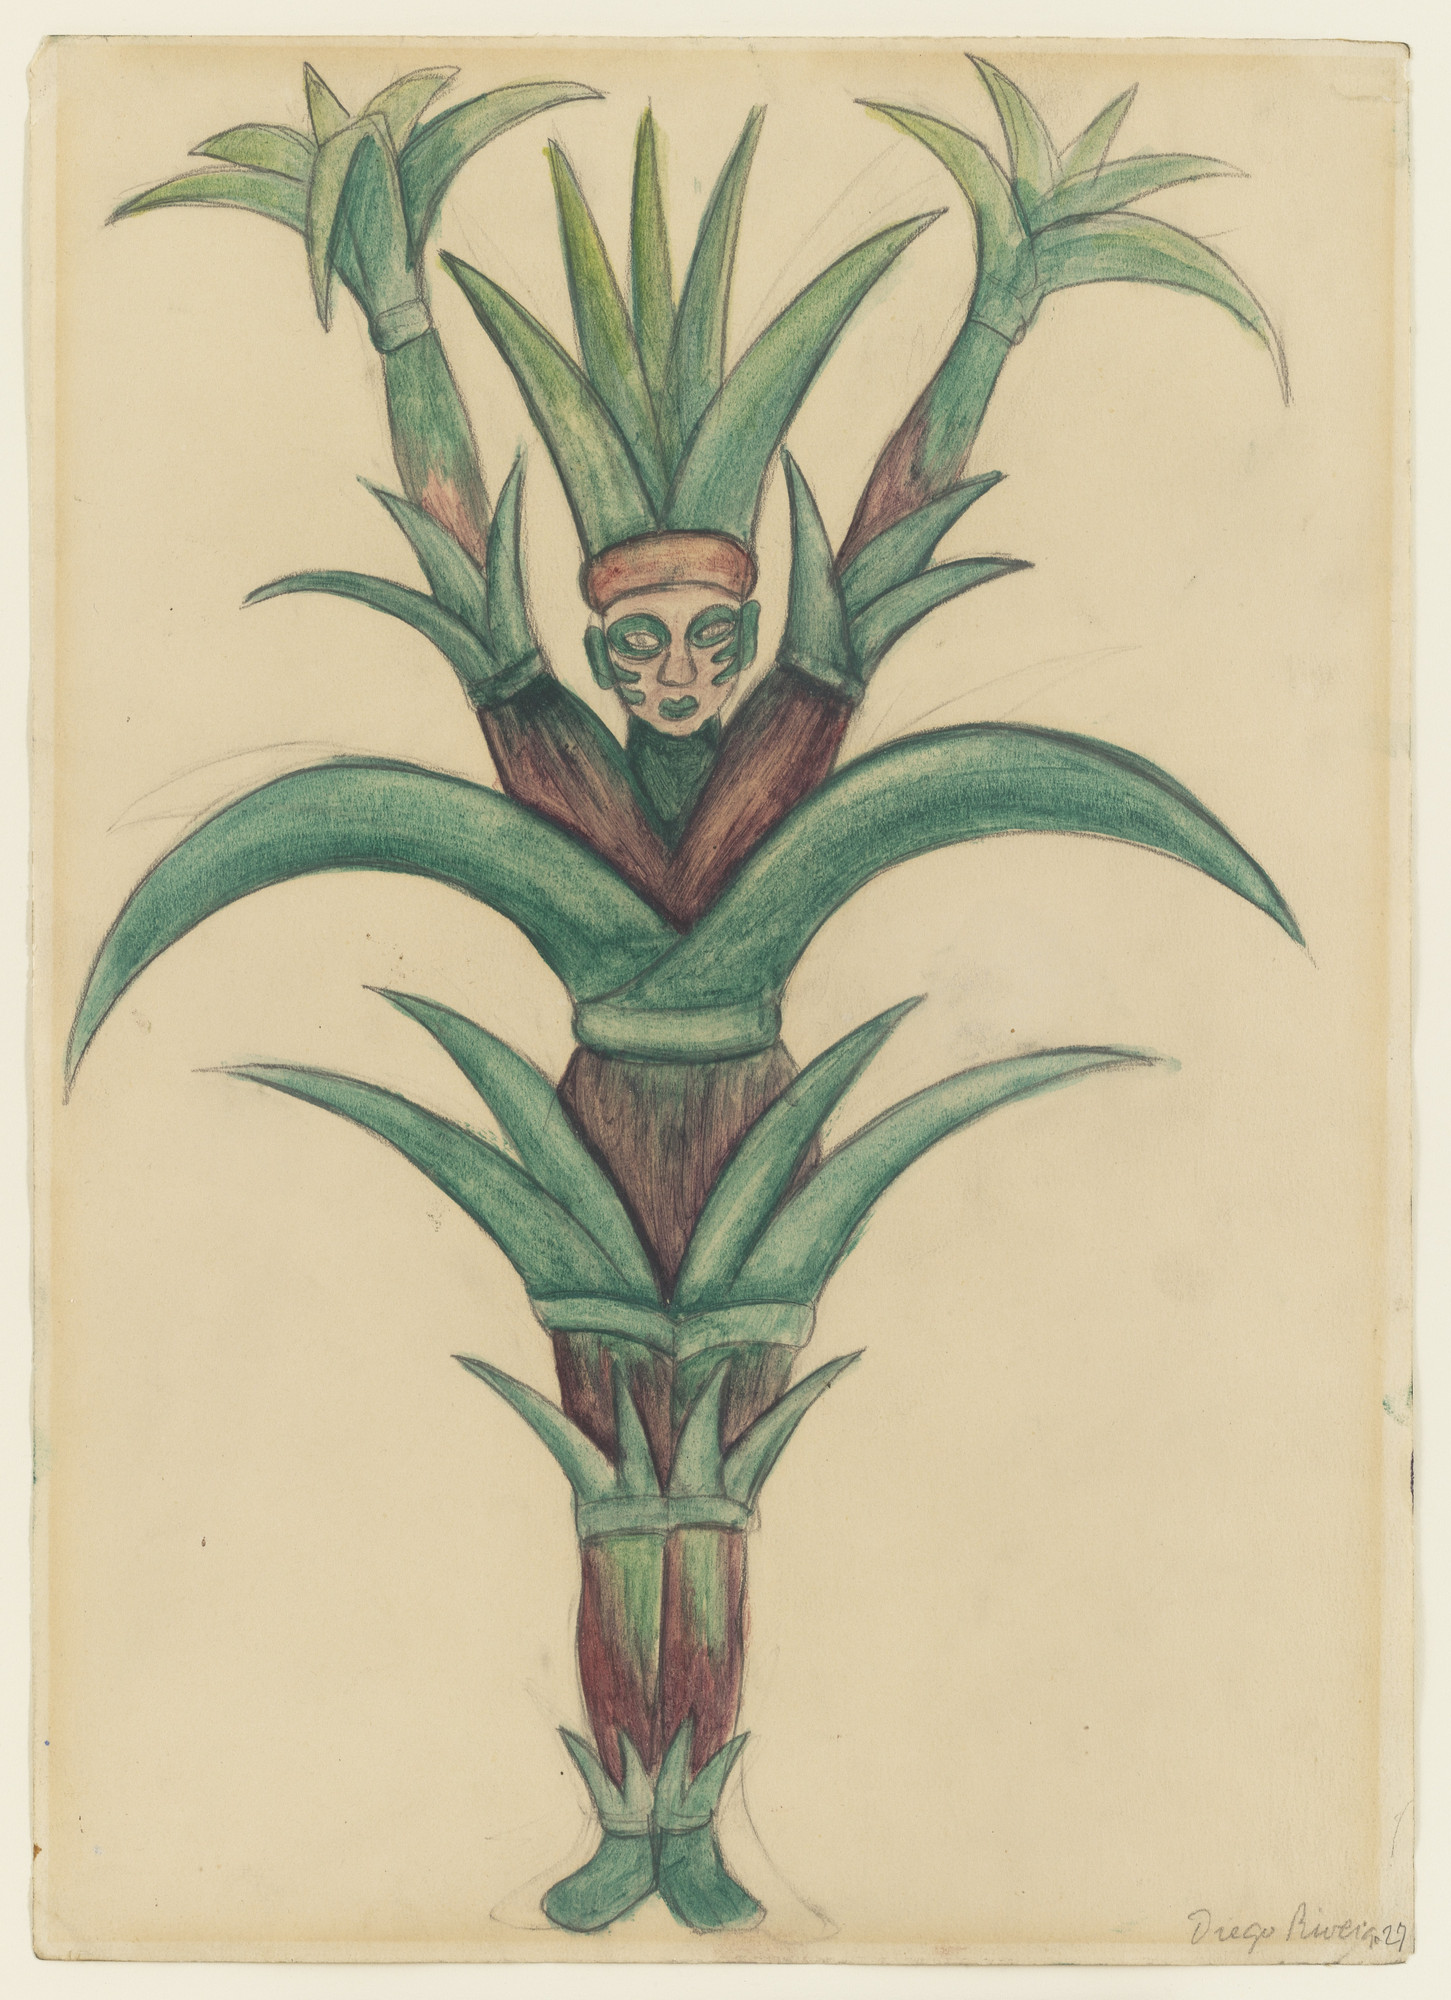 Diego Rivera. Sugar Cane, design for H.P. (Horsepower). 1927